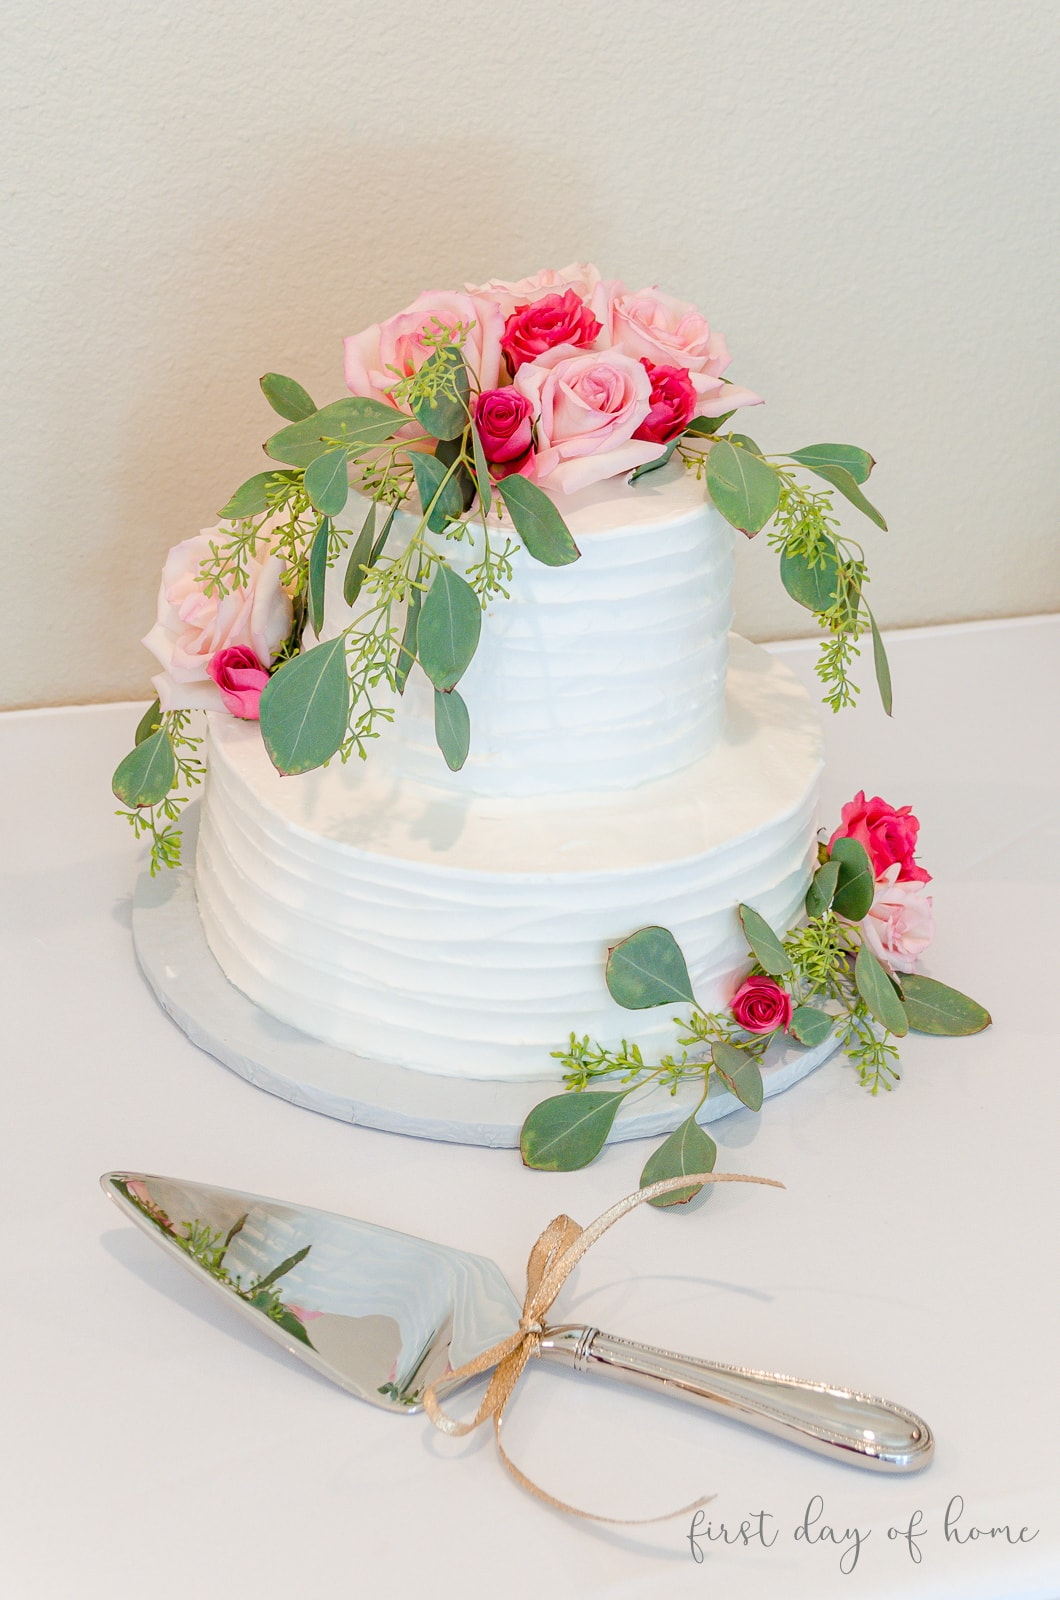 White bridal shower cake with fresh eucalyptus leaves and fresh roses